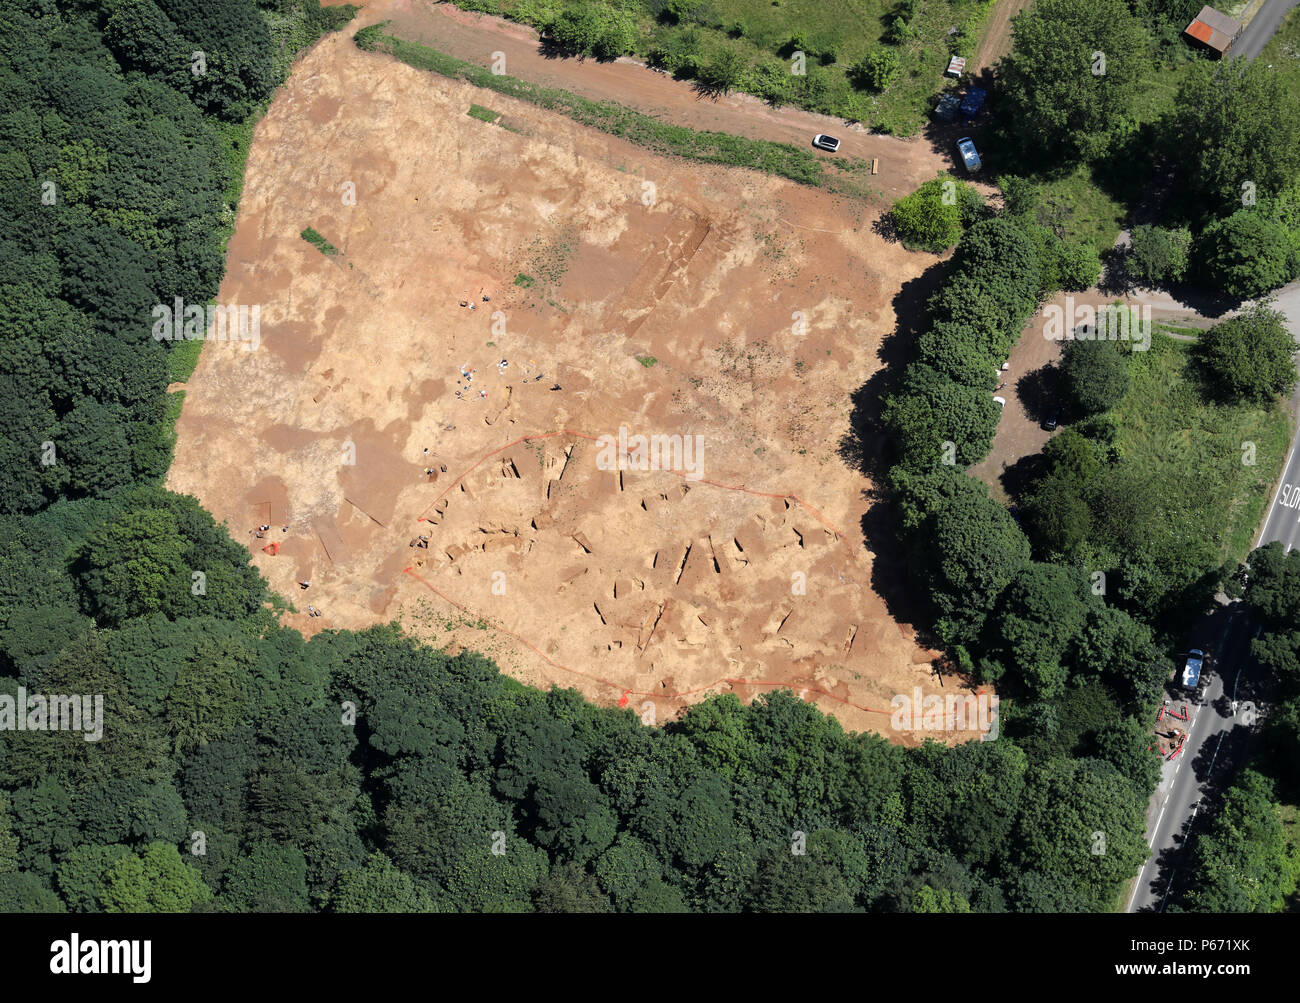 aerial view of an archaeological dig - Stock Image